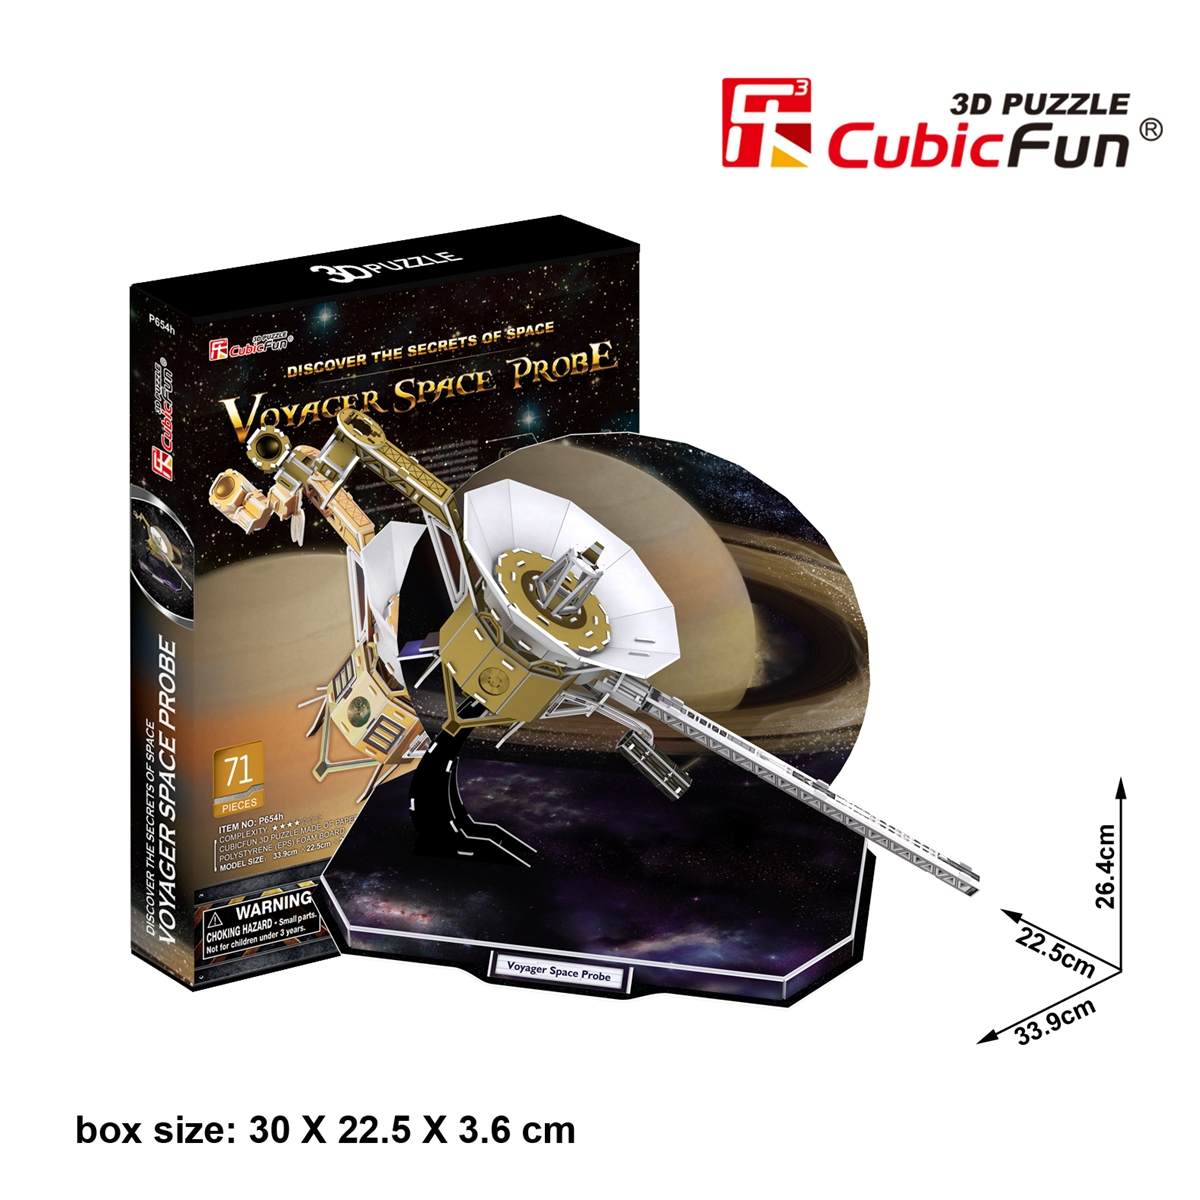 Voyager Space Probe Size 33.9*22.5*26.4 cm Total 71 Pieces.